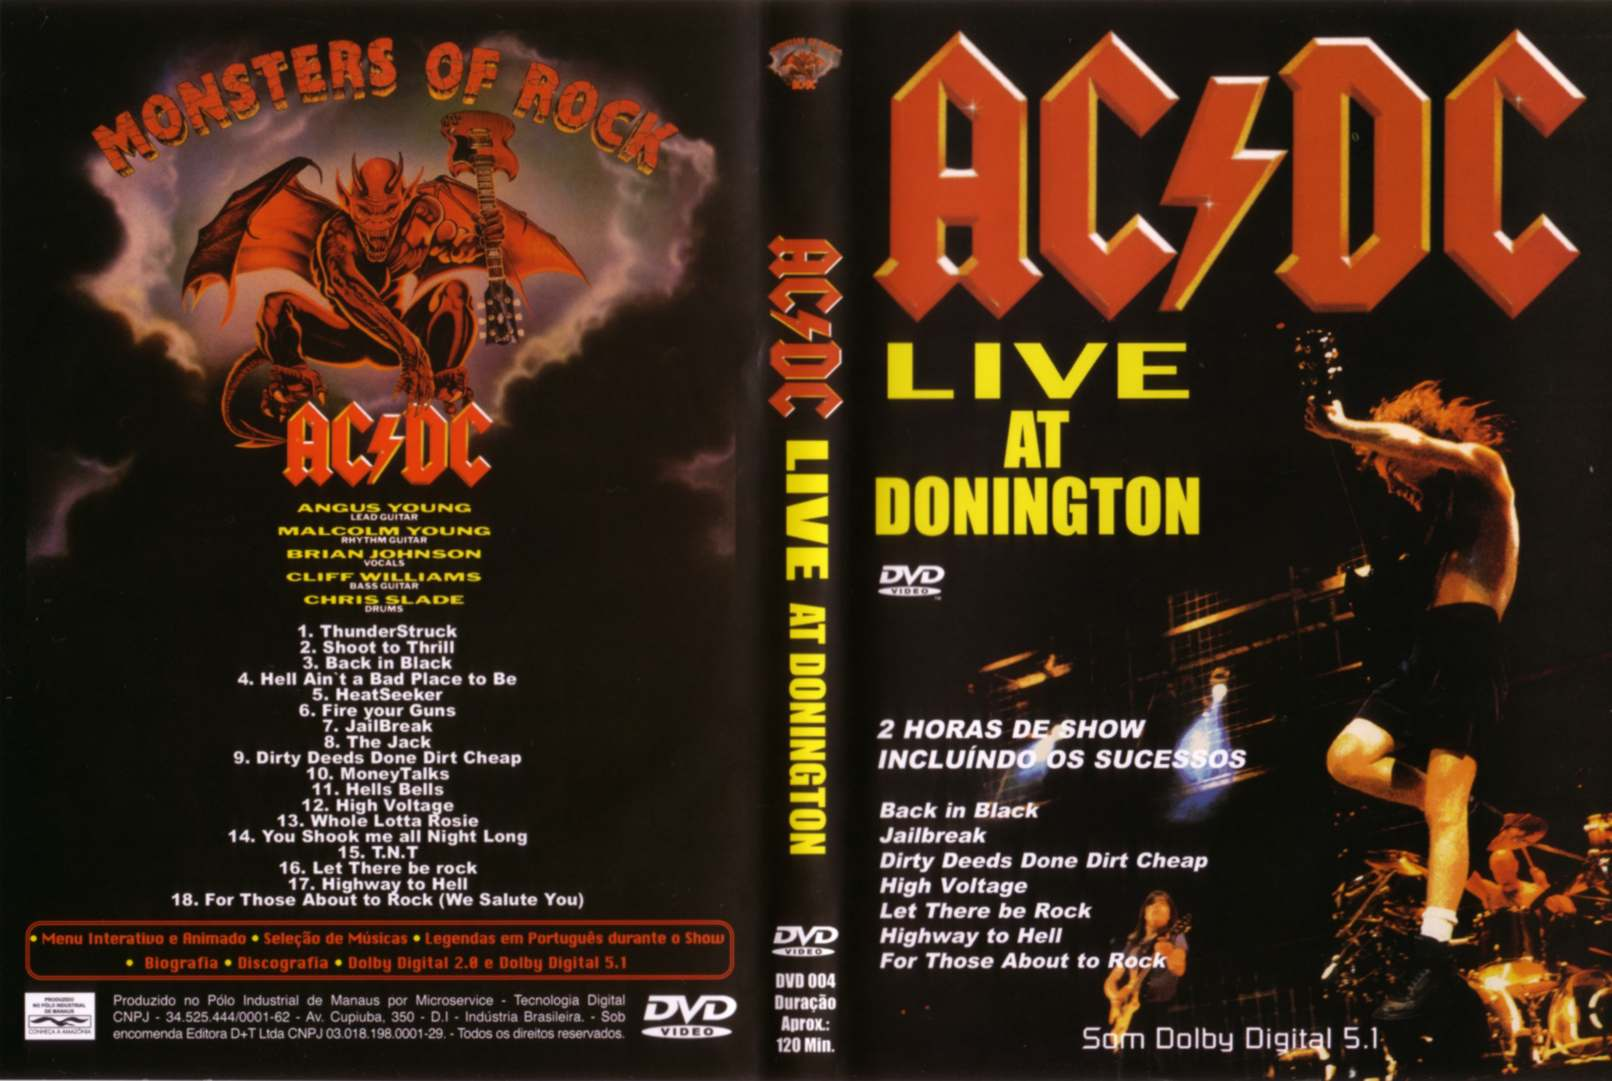 Jaquette DVD ACDC live at donington